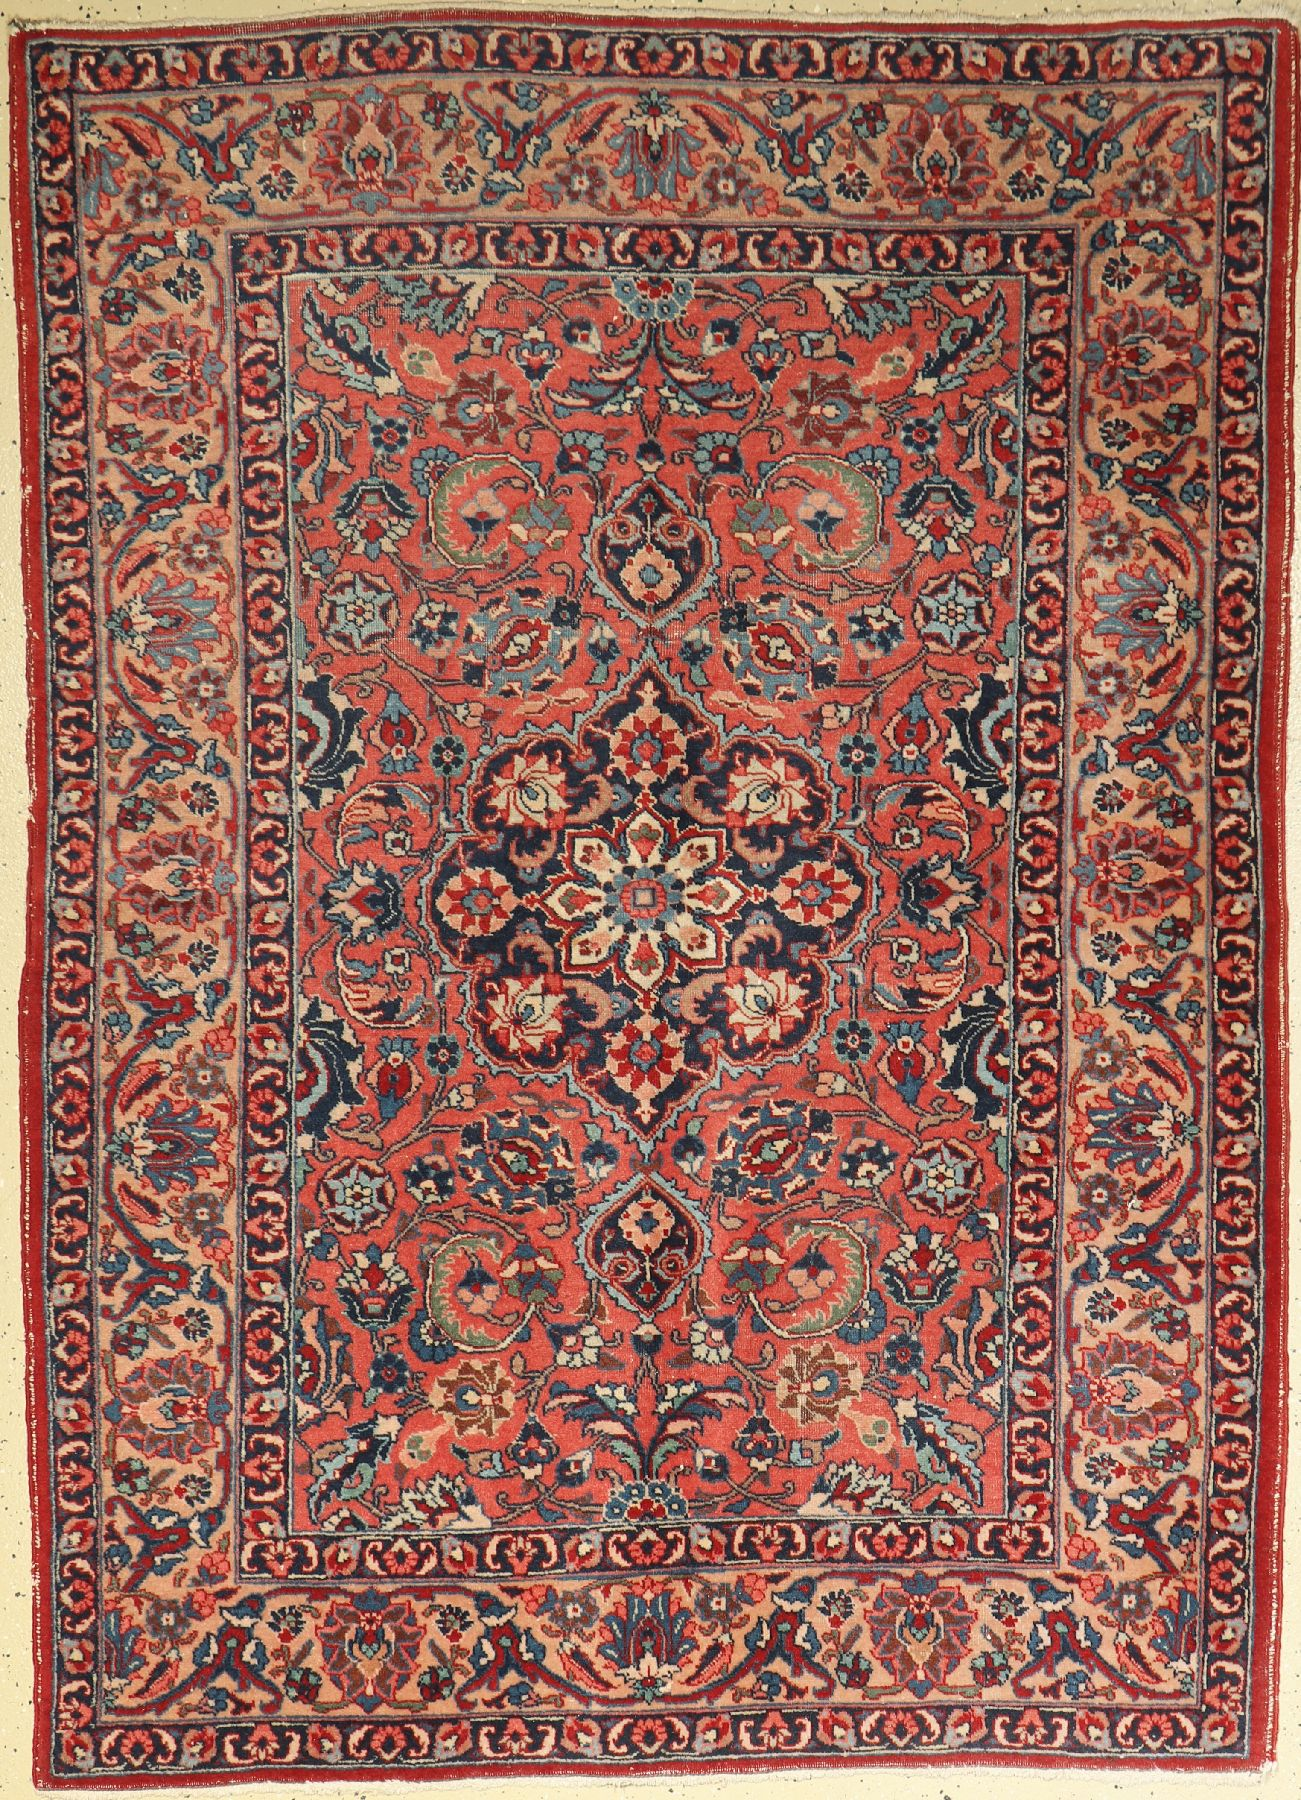 Tabriz Khoy old, Persia, around 1930, wool on cotton, approx. 189 x 138 cm, condition: 4. Auction: